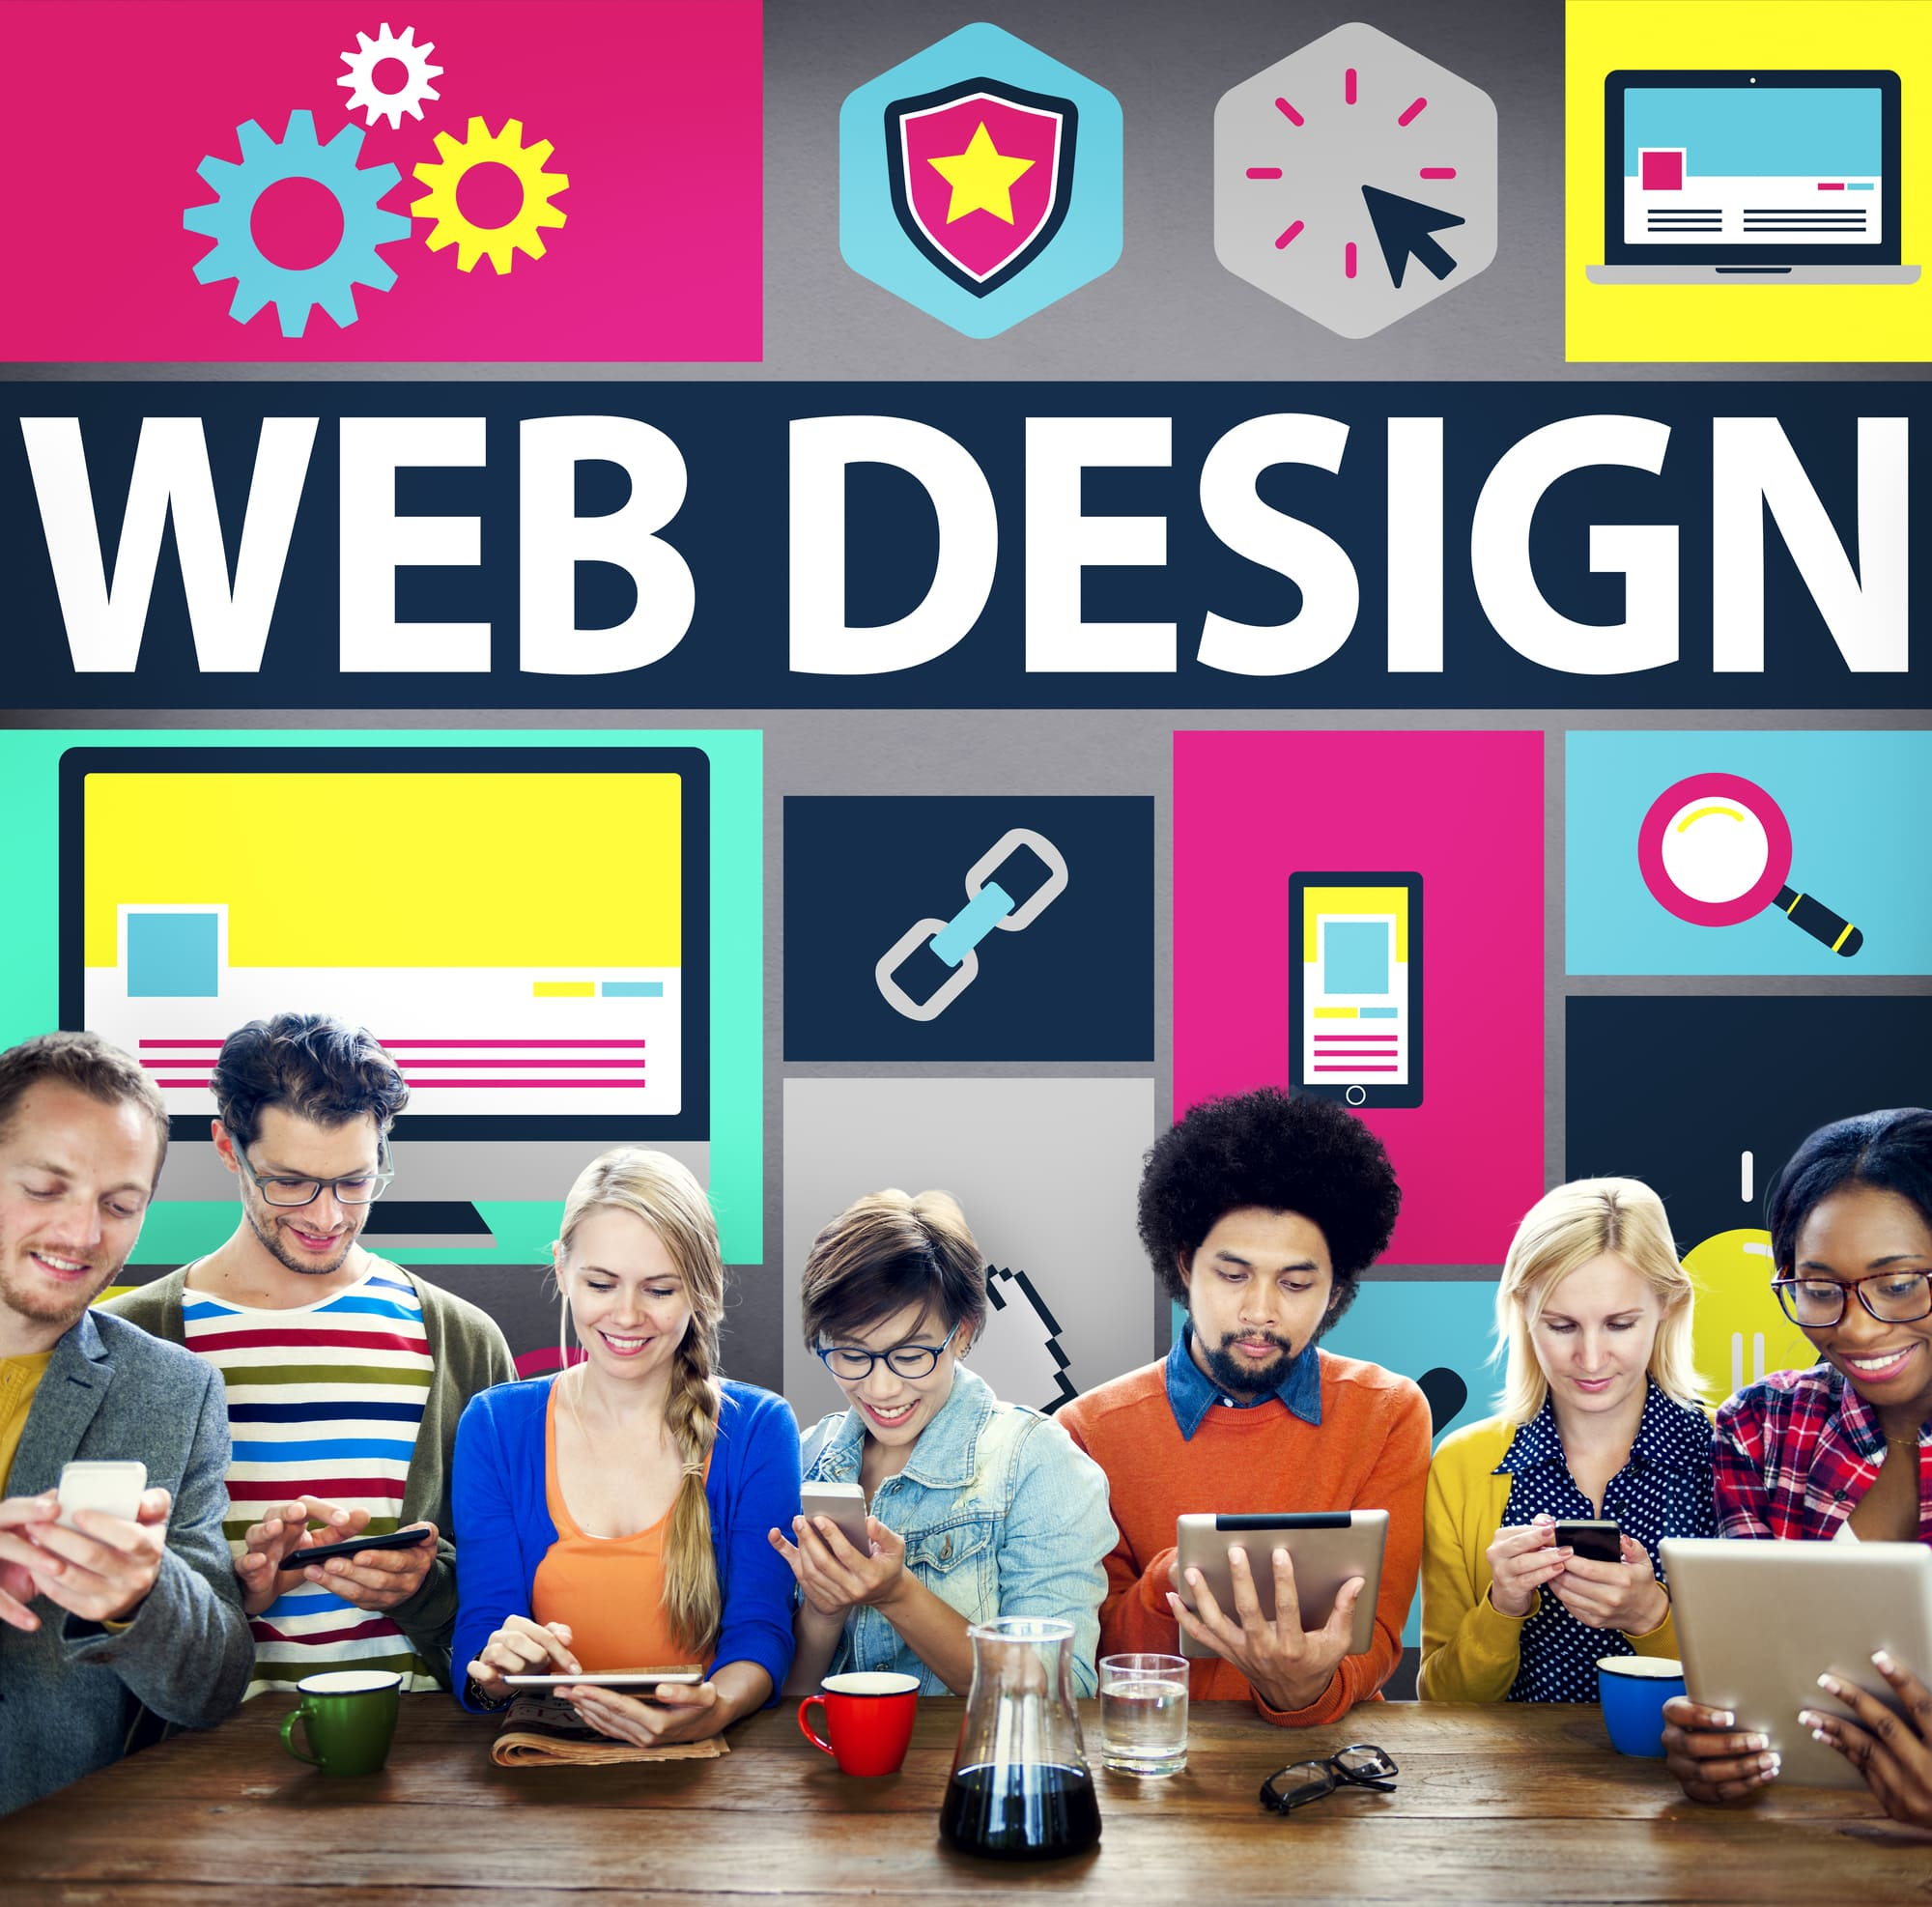 website design services - The Ad Firm